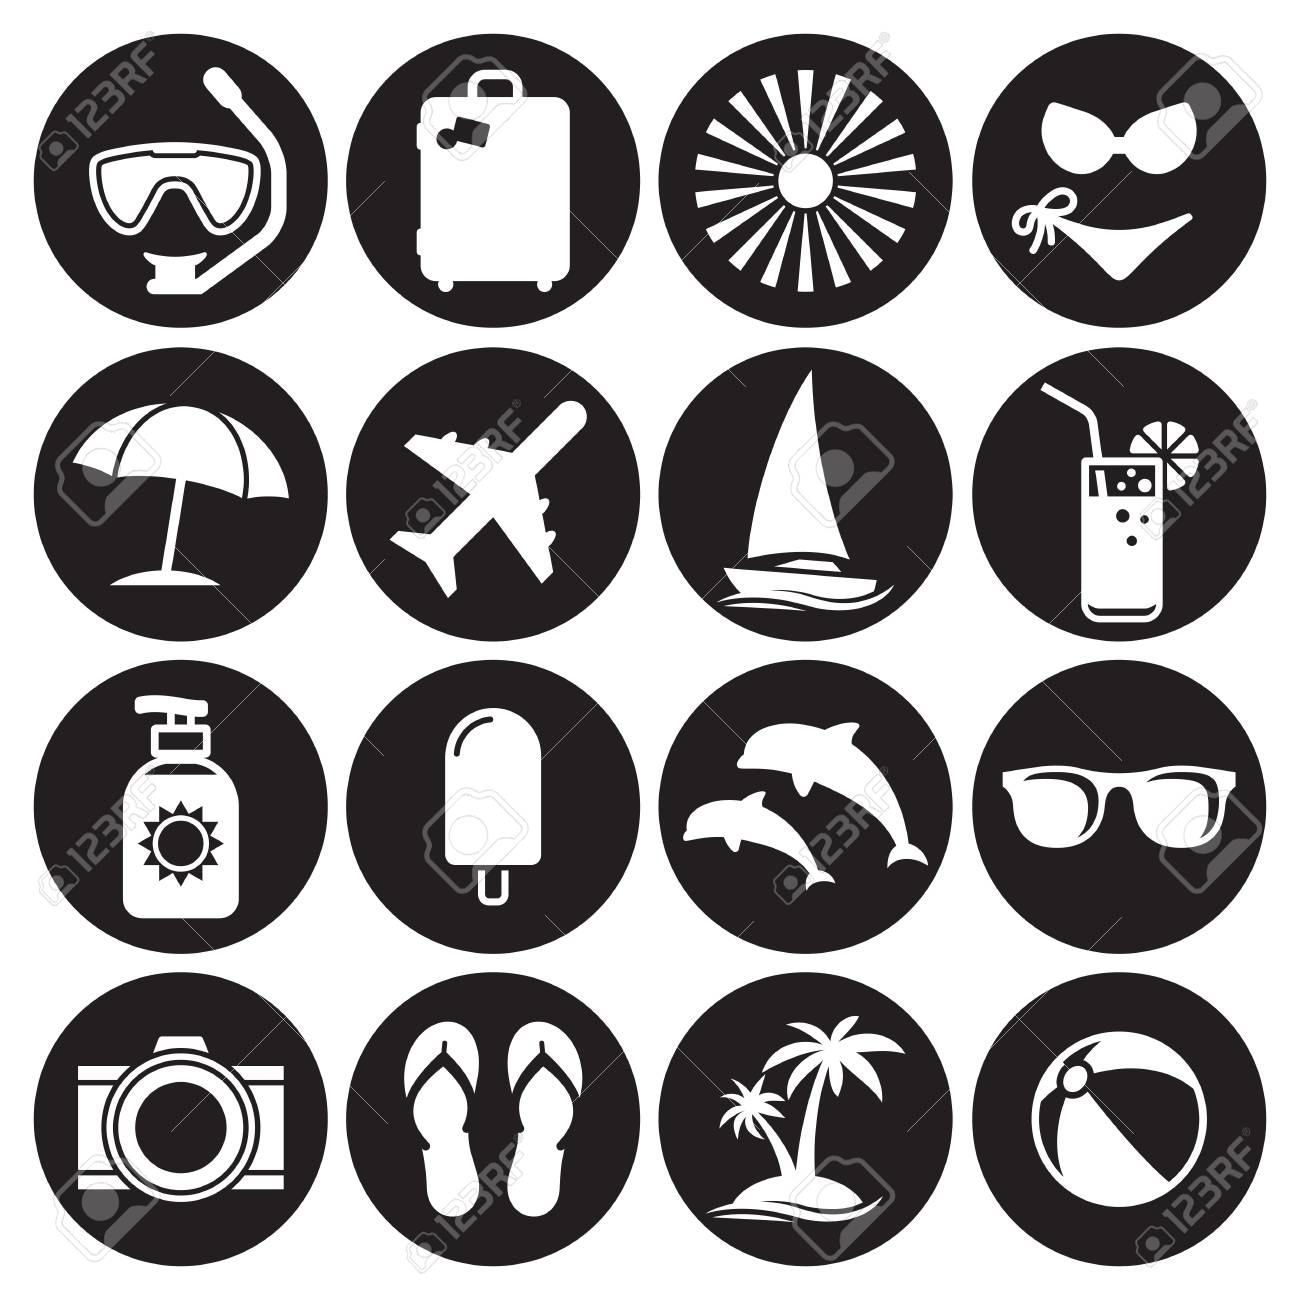 summer icon set white on a black background royalty free cliparts vectors and stock illustration image 84737158 summer icon set white on a black background